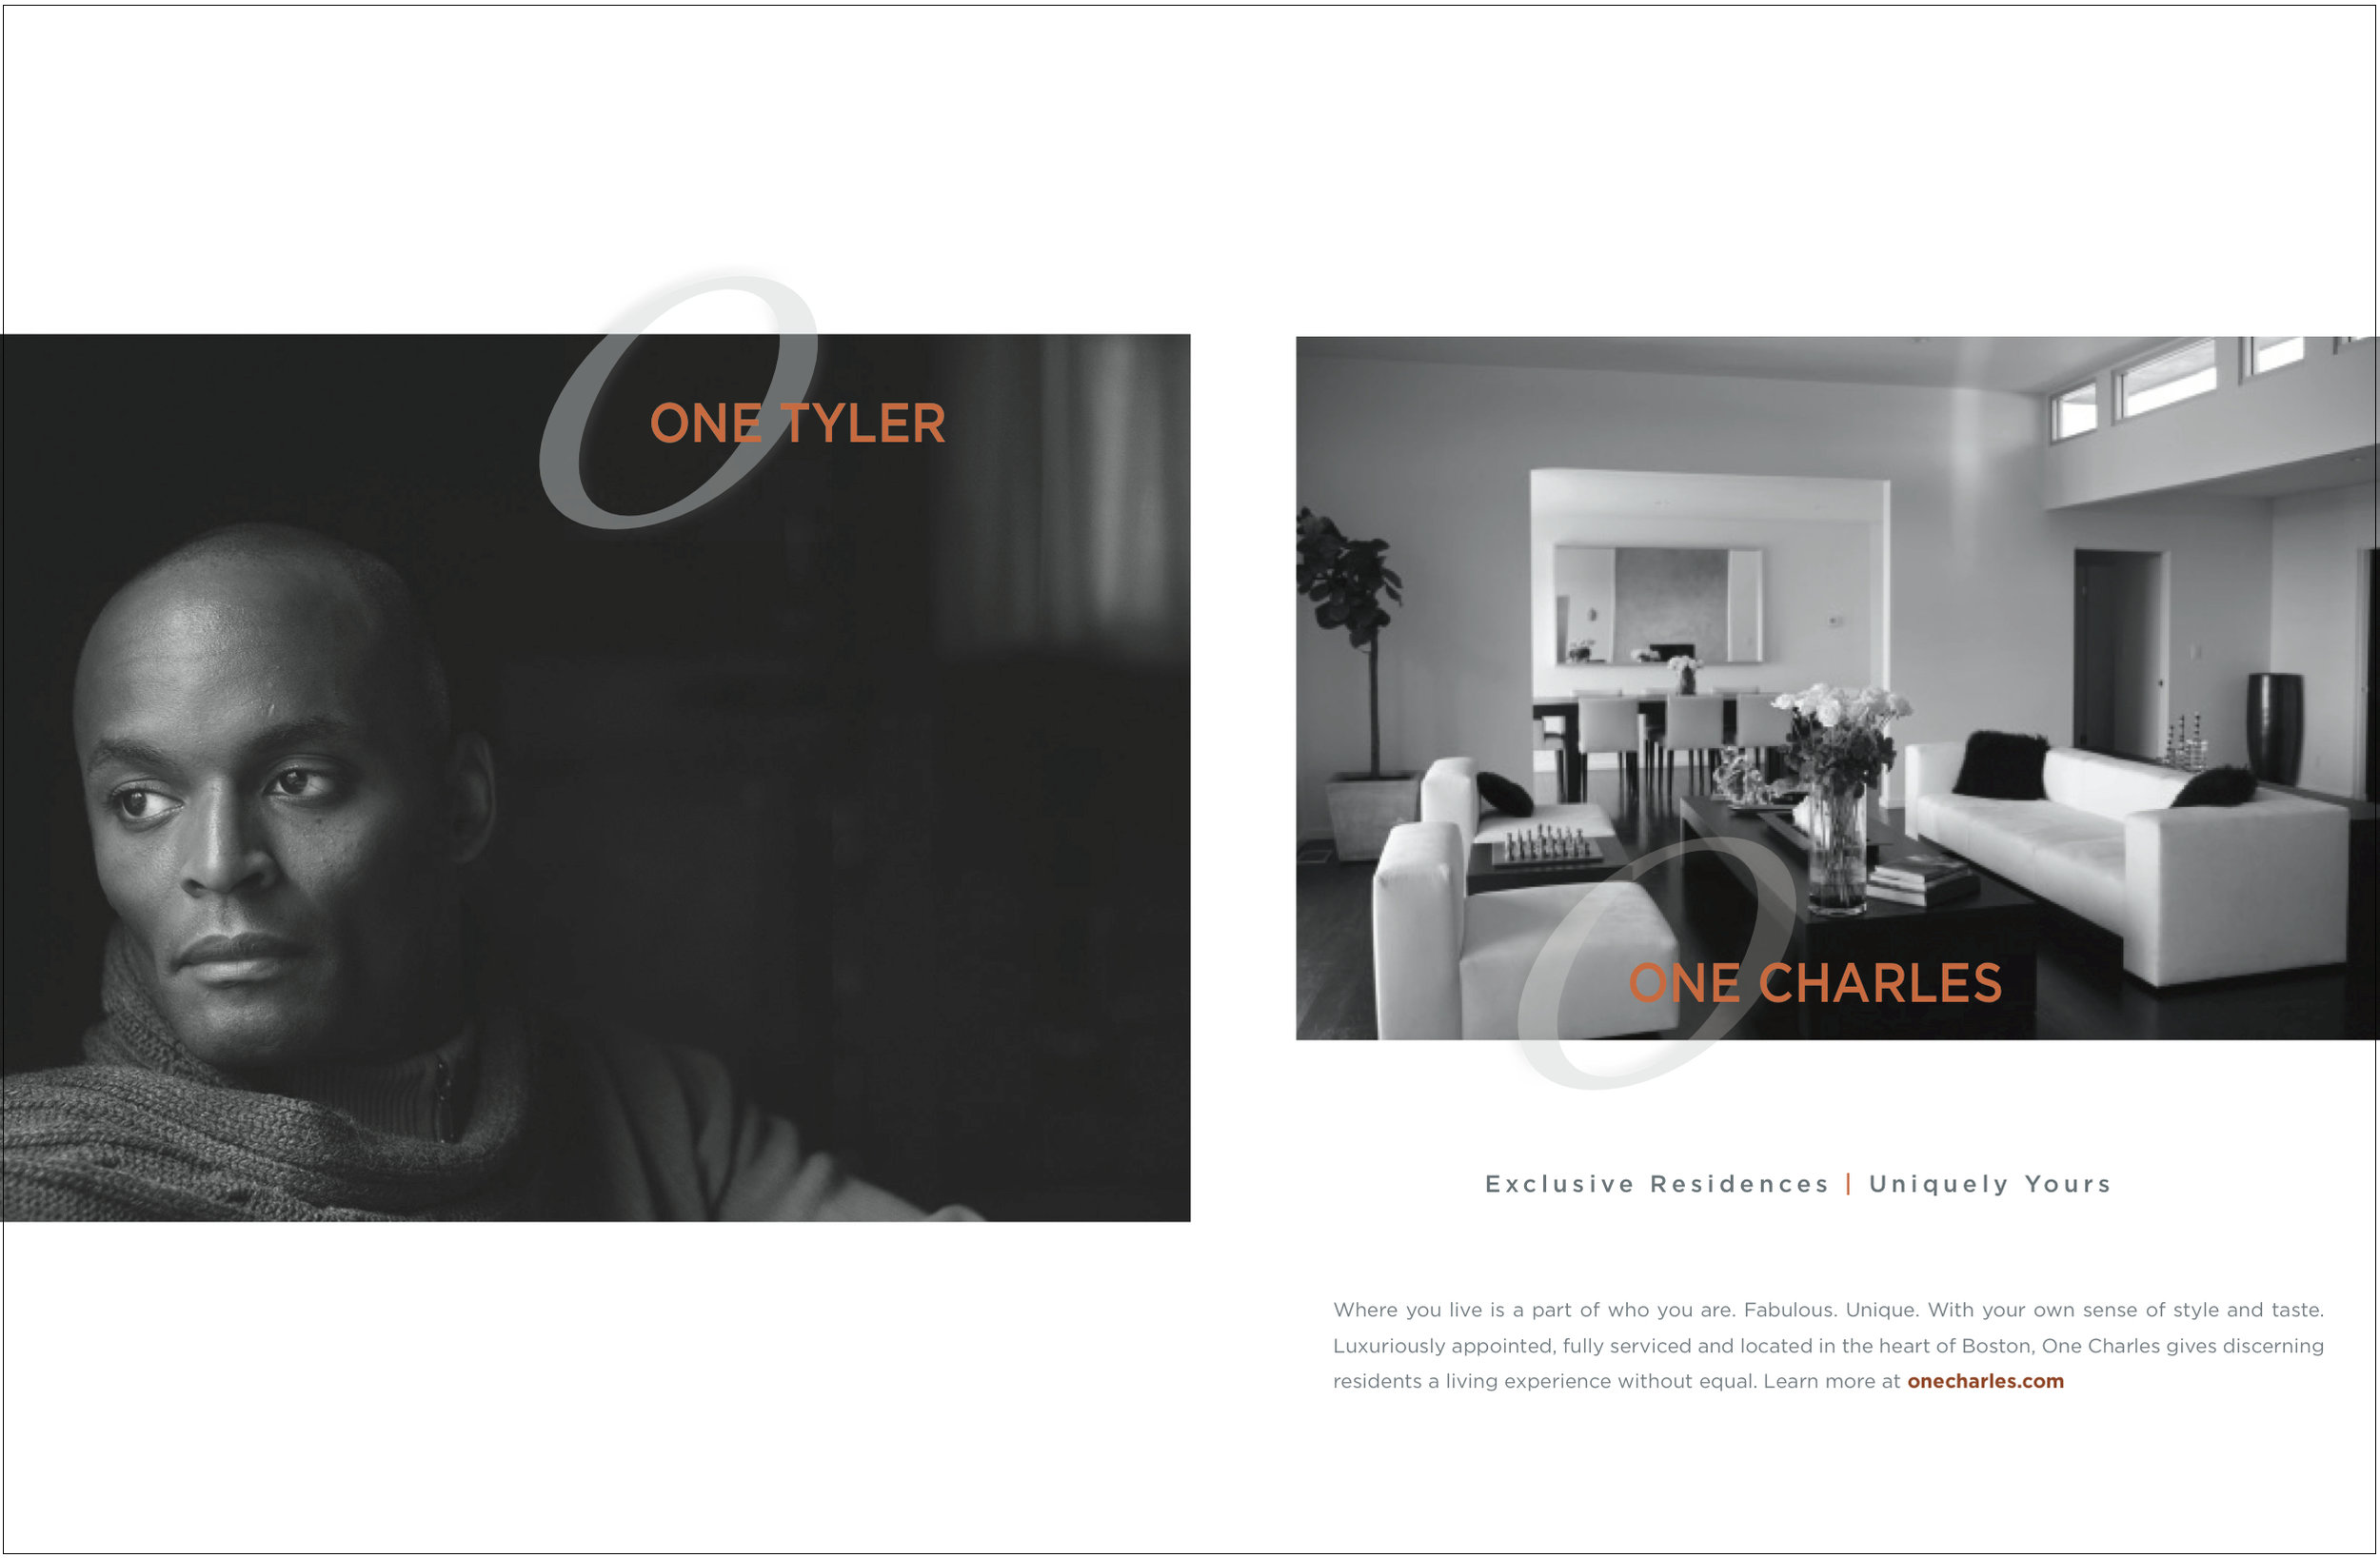 One Charles  - One Charles is a highly exclusive Boston property located in the Back Bay - convenient to the Theater District, South End and Beacon Hill. We re-branded the property around a distinctive lifestyle theme, with striking print and a distinctive new website. VIEW THE PRINT CAMPAIGNCASE STUDY